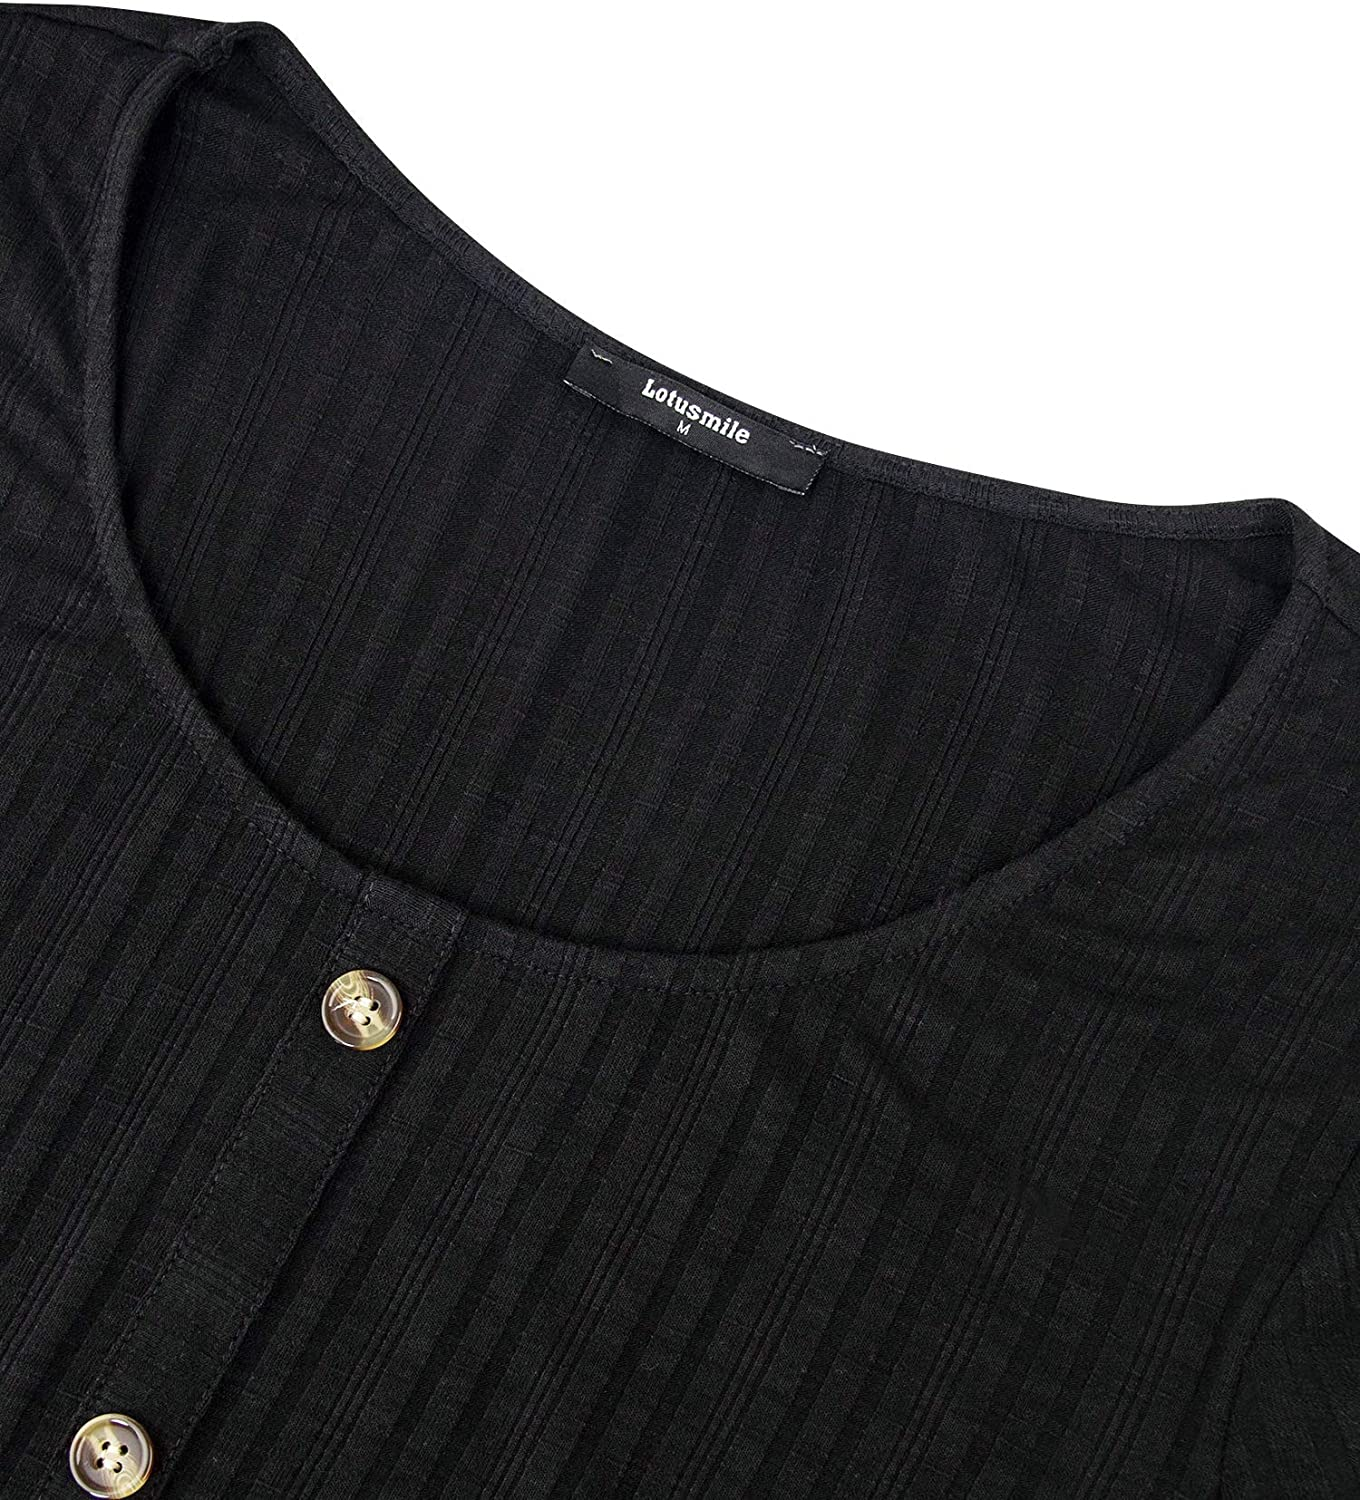 Lotusmile Womens Casual Roll-Up 3//4 Sleeve Knit Ribbed Tops Loose Button Tunic Shirts